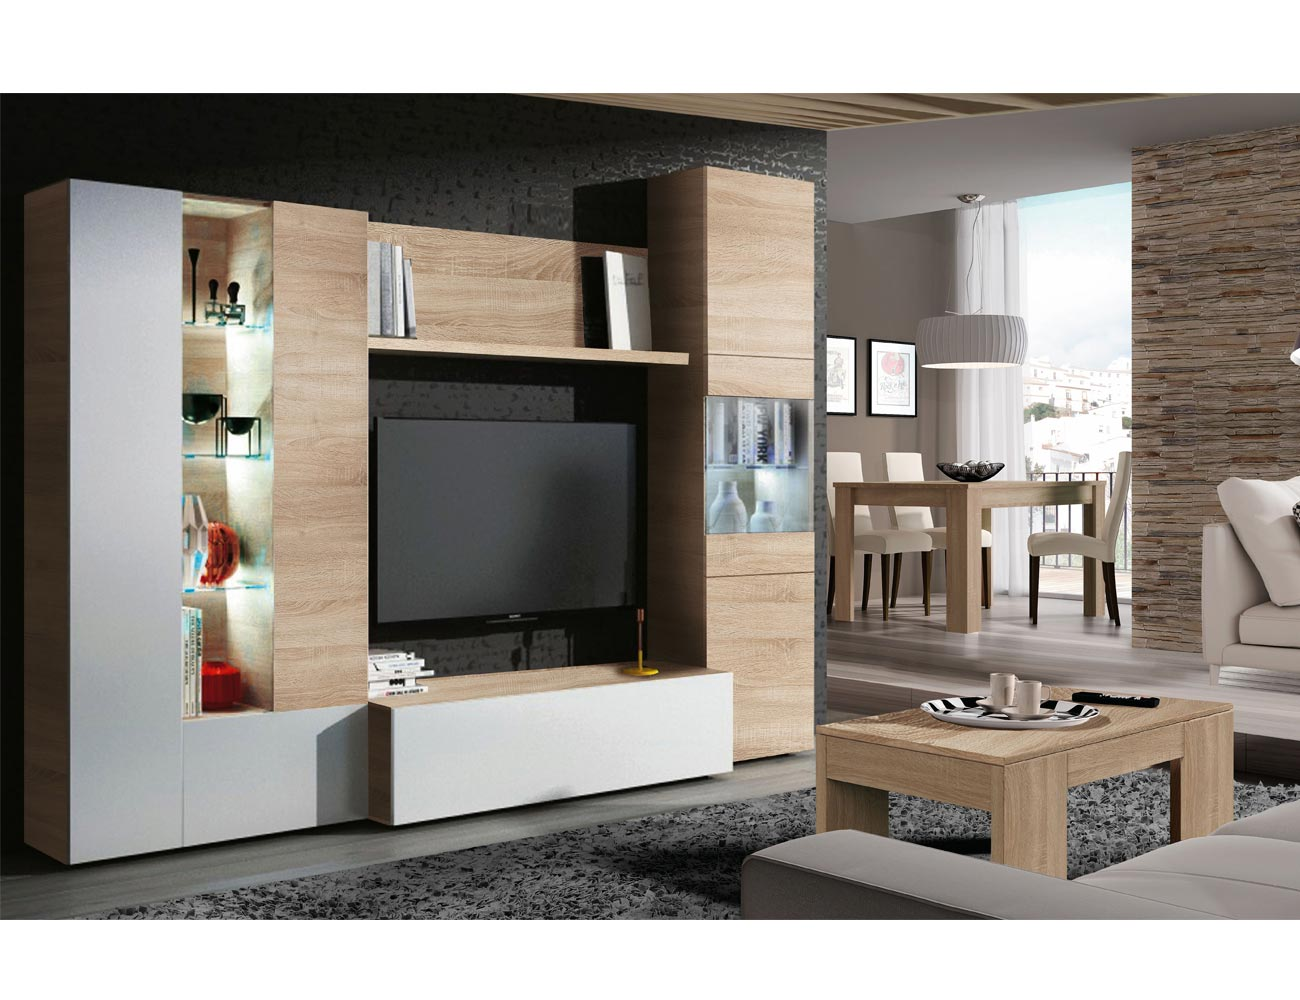 Muebles Nature : Muebles de salon roble natural vangion